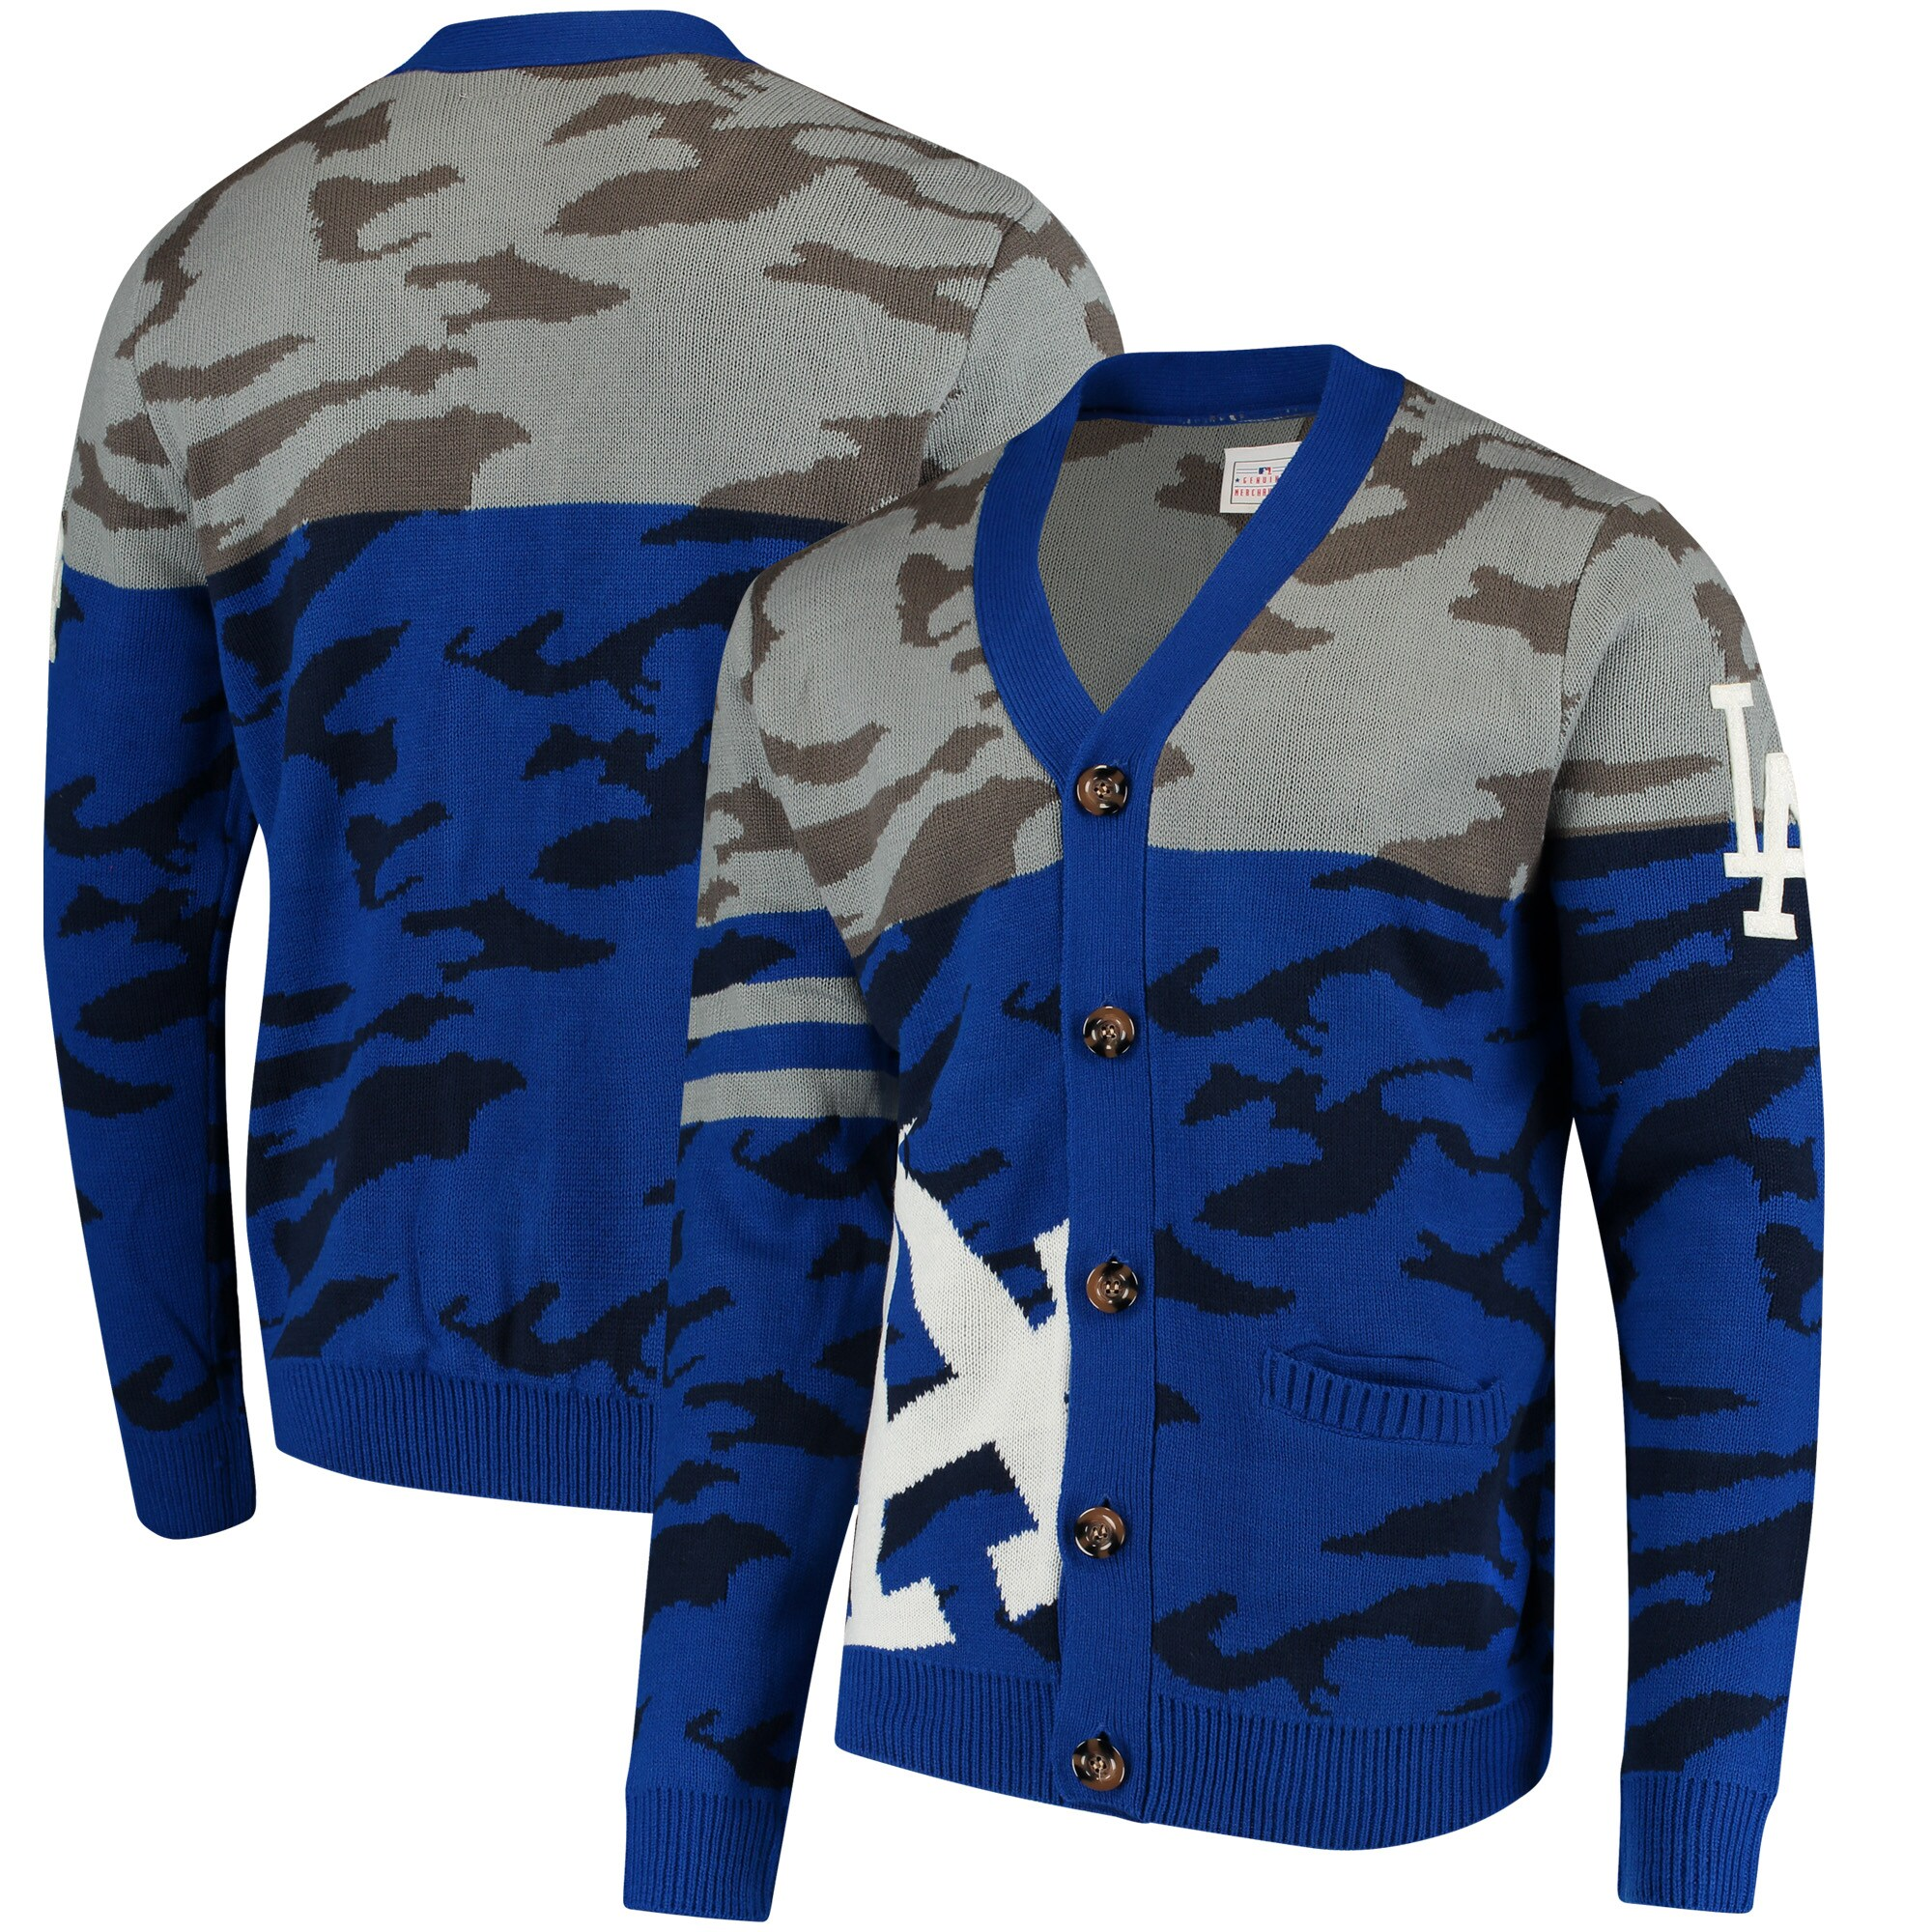 Los Angeles Dodgers Camouflage Cardigan Sweater - Royal